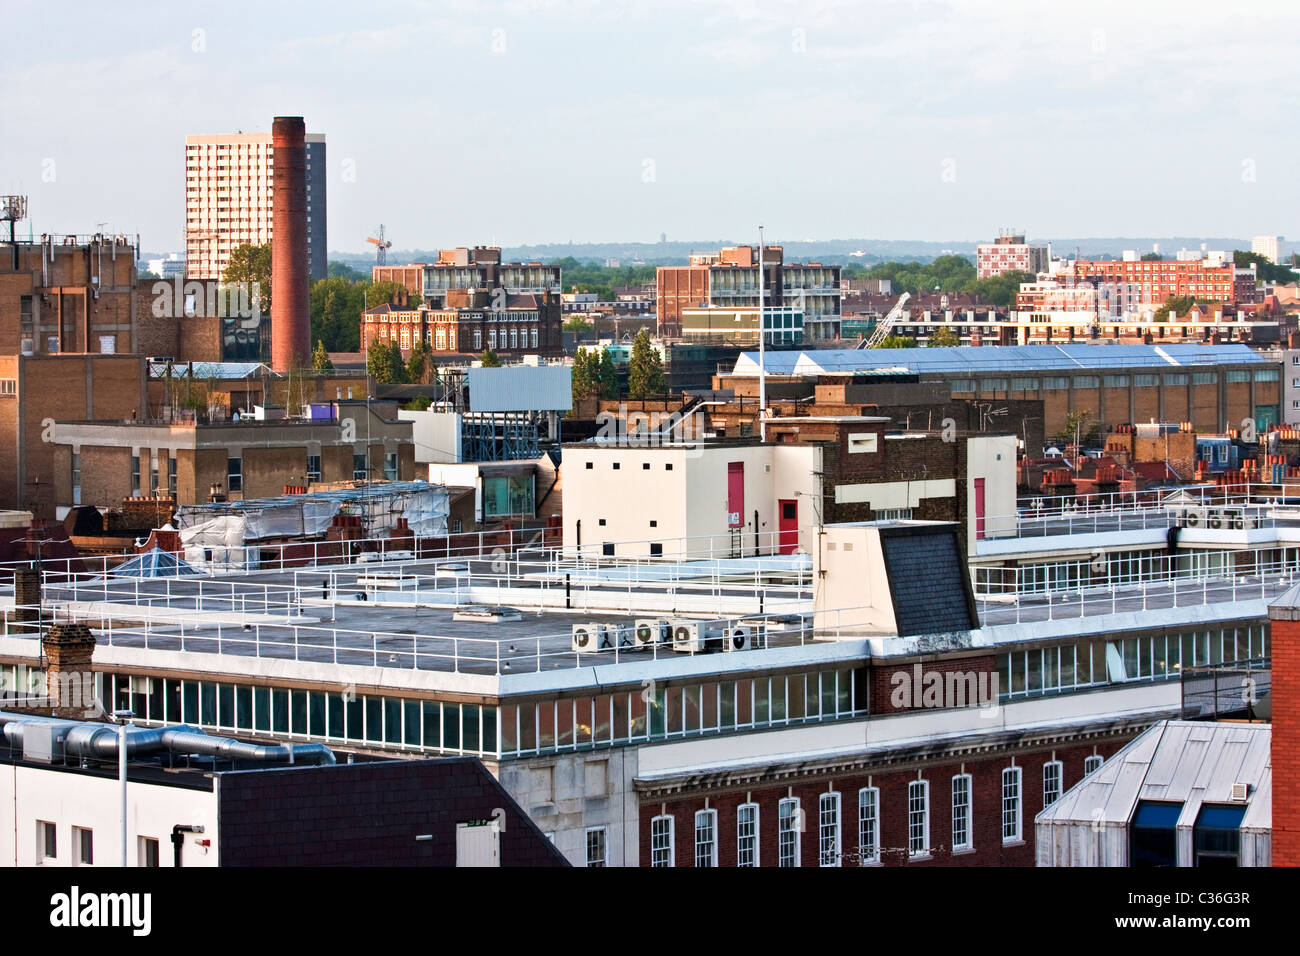 The skyline of east london looking towards bethnal green - Stock Image